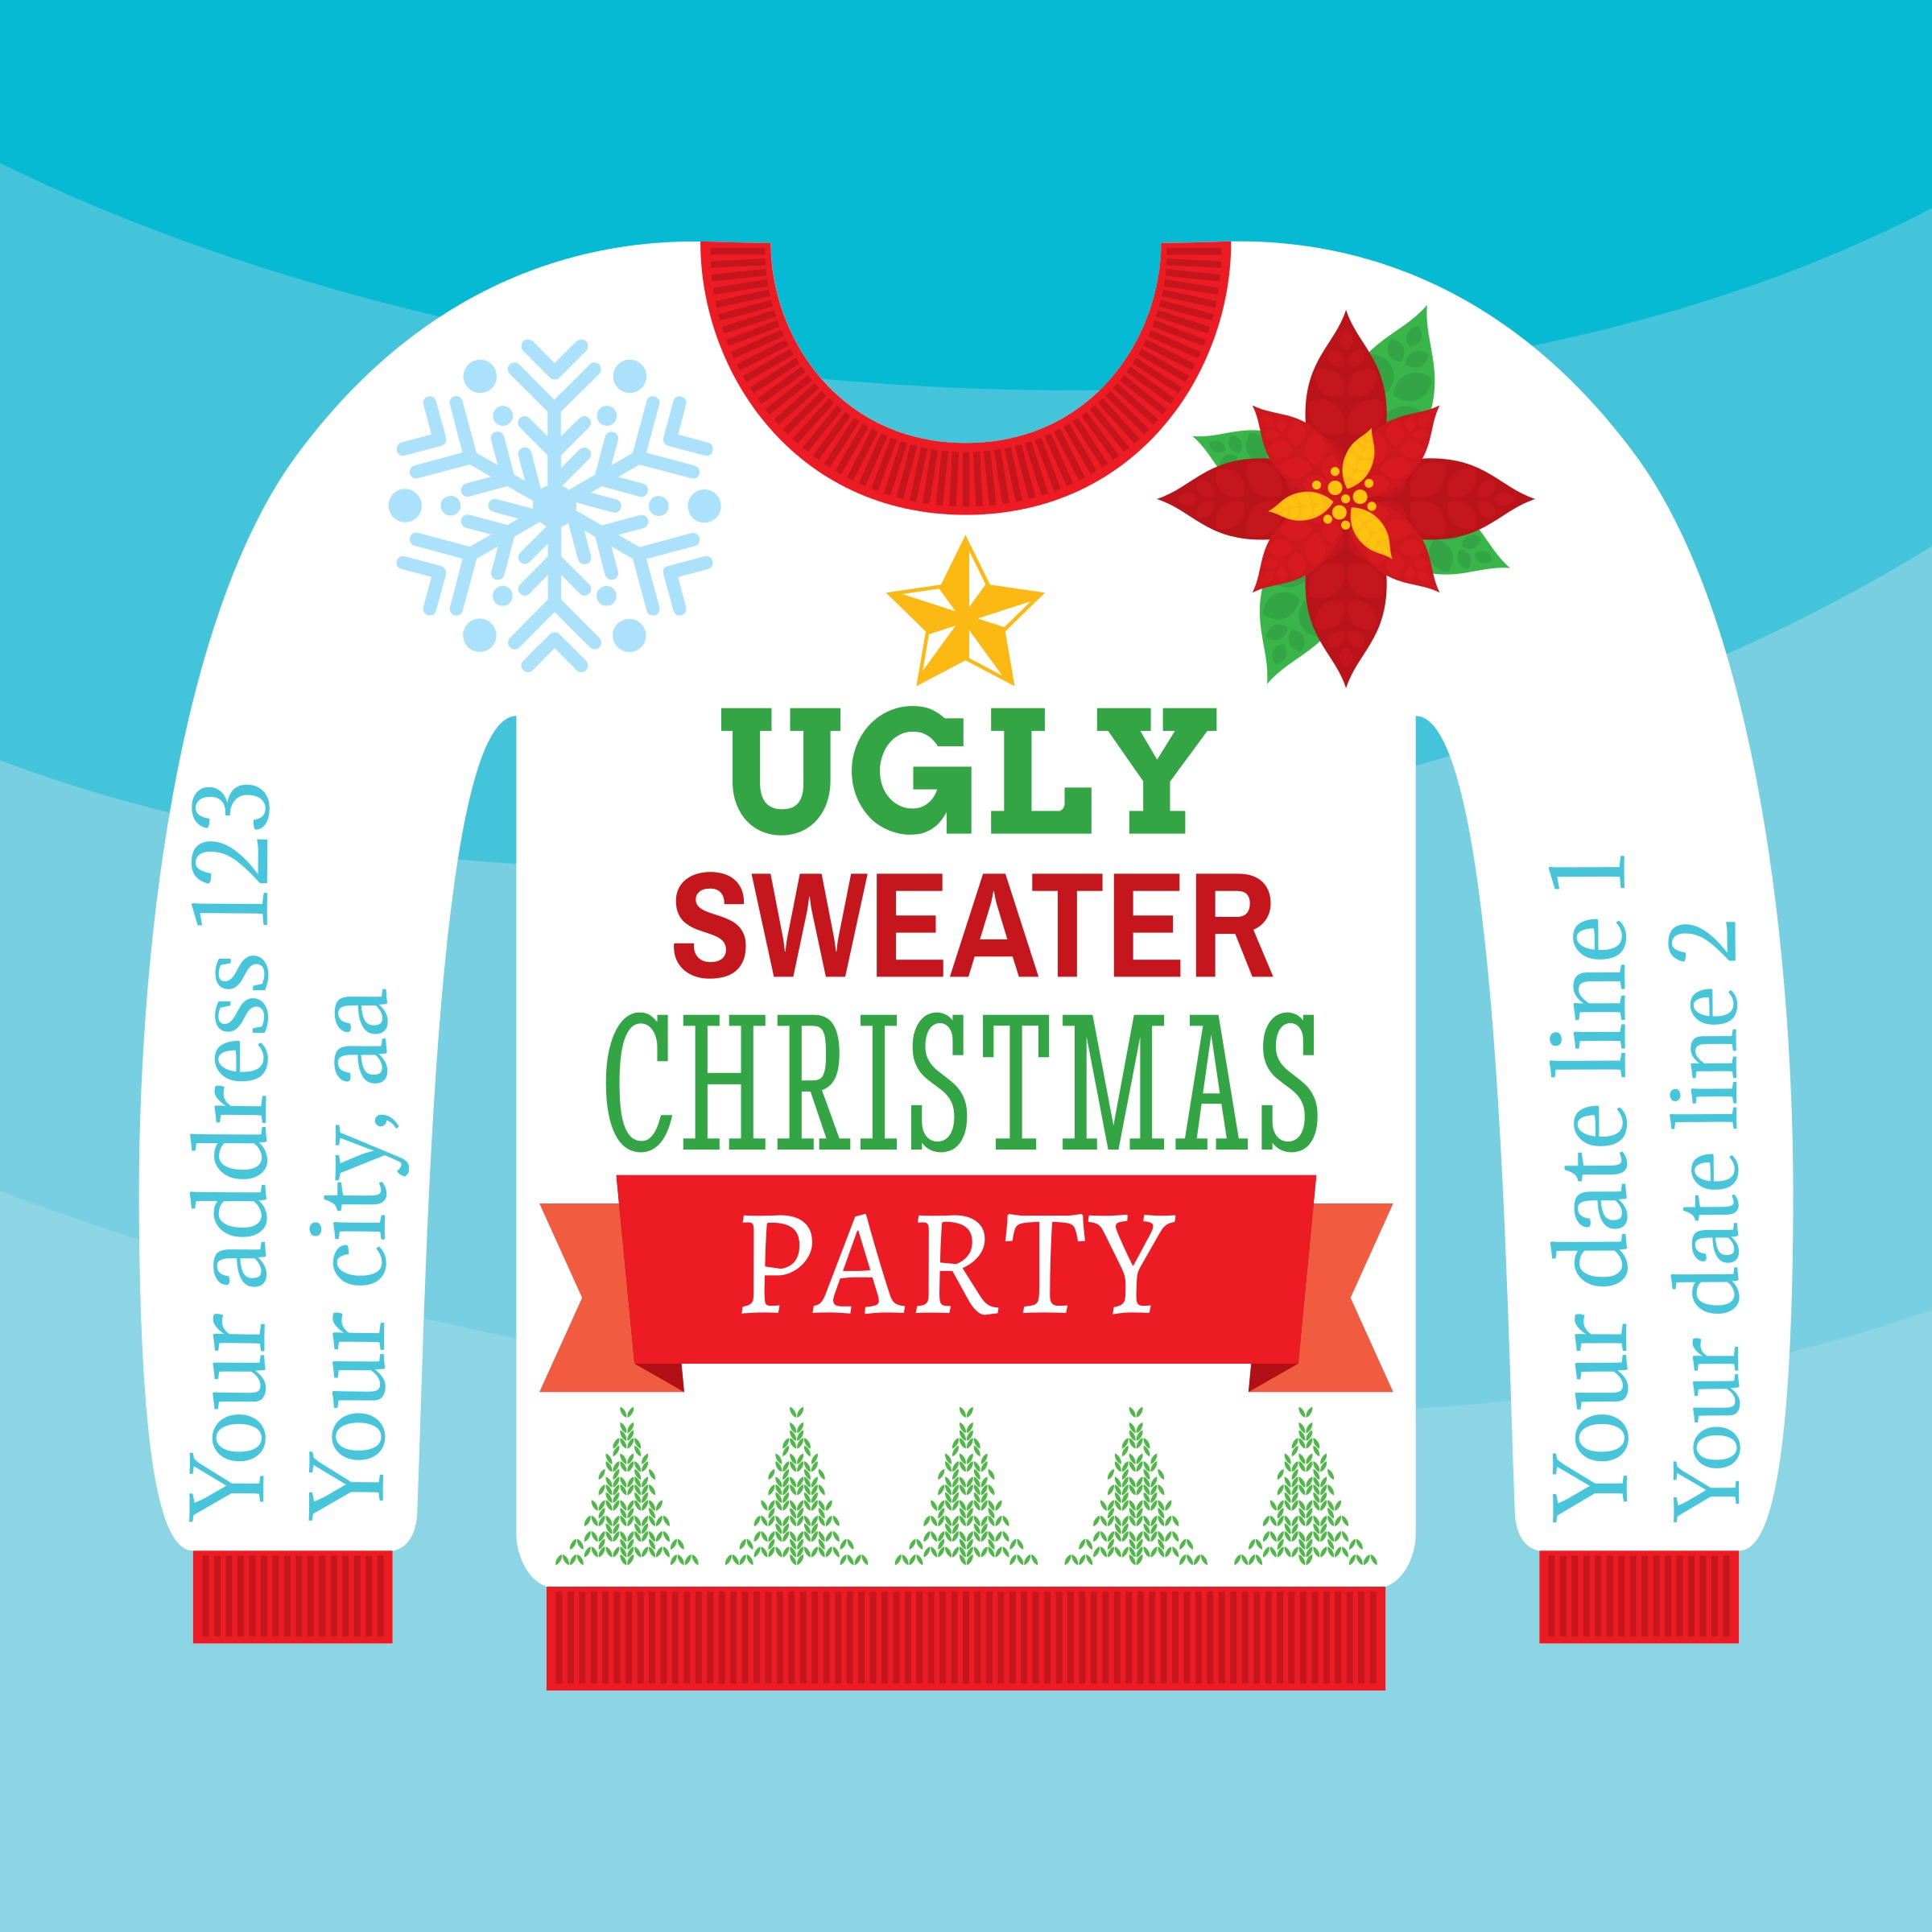 Ugly Christmas Sweater Card - Download Free Vector Art, Stock ...